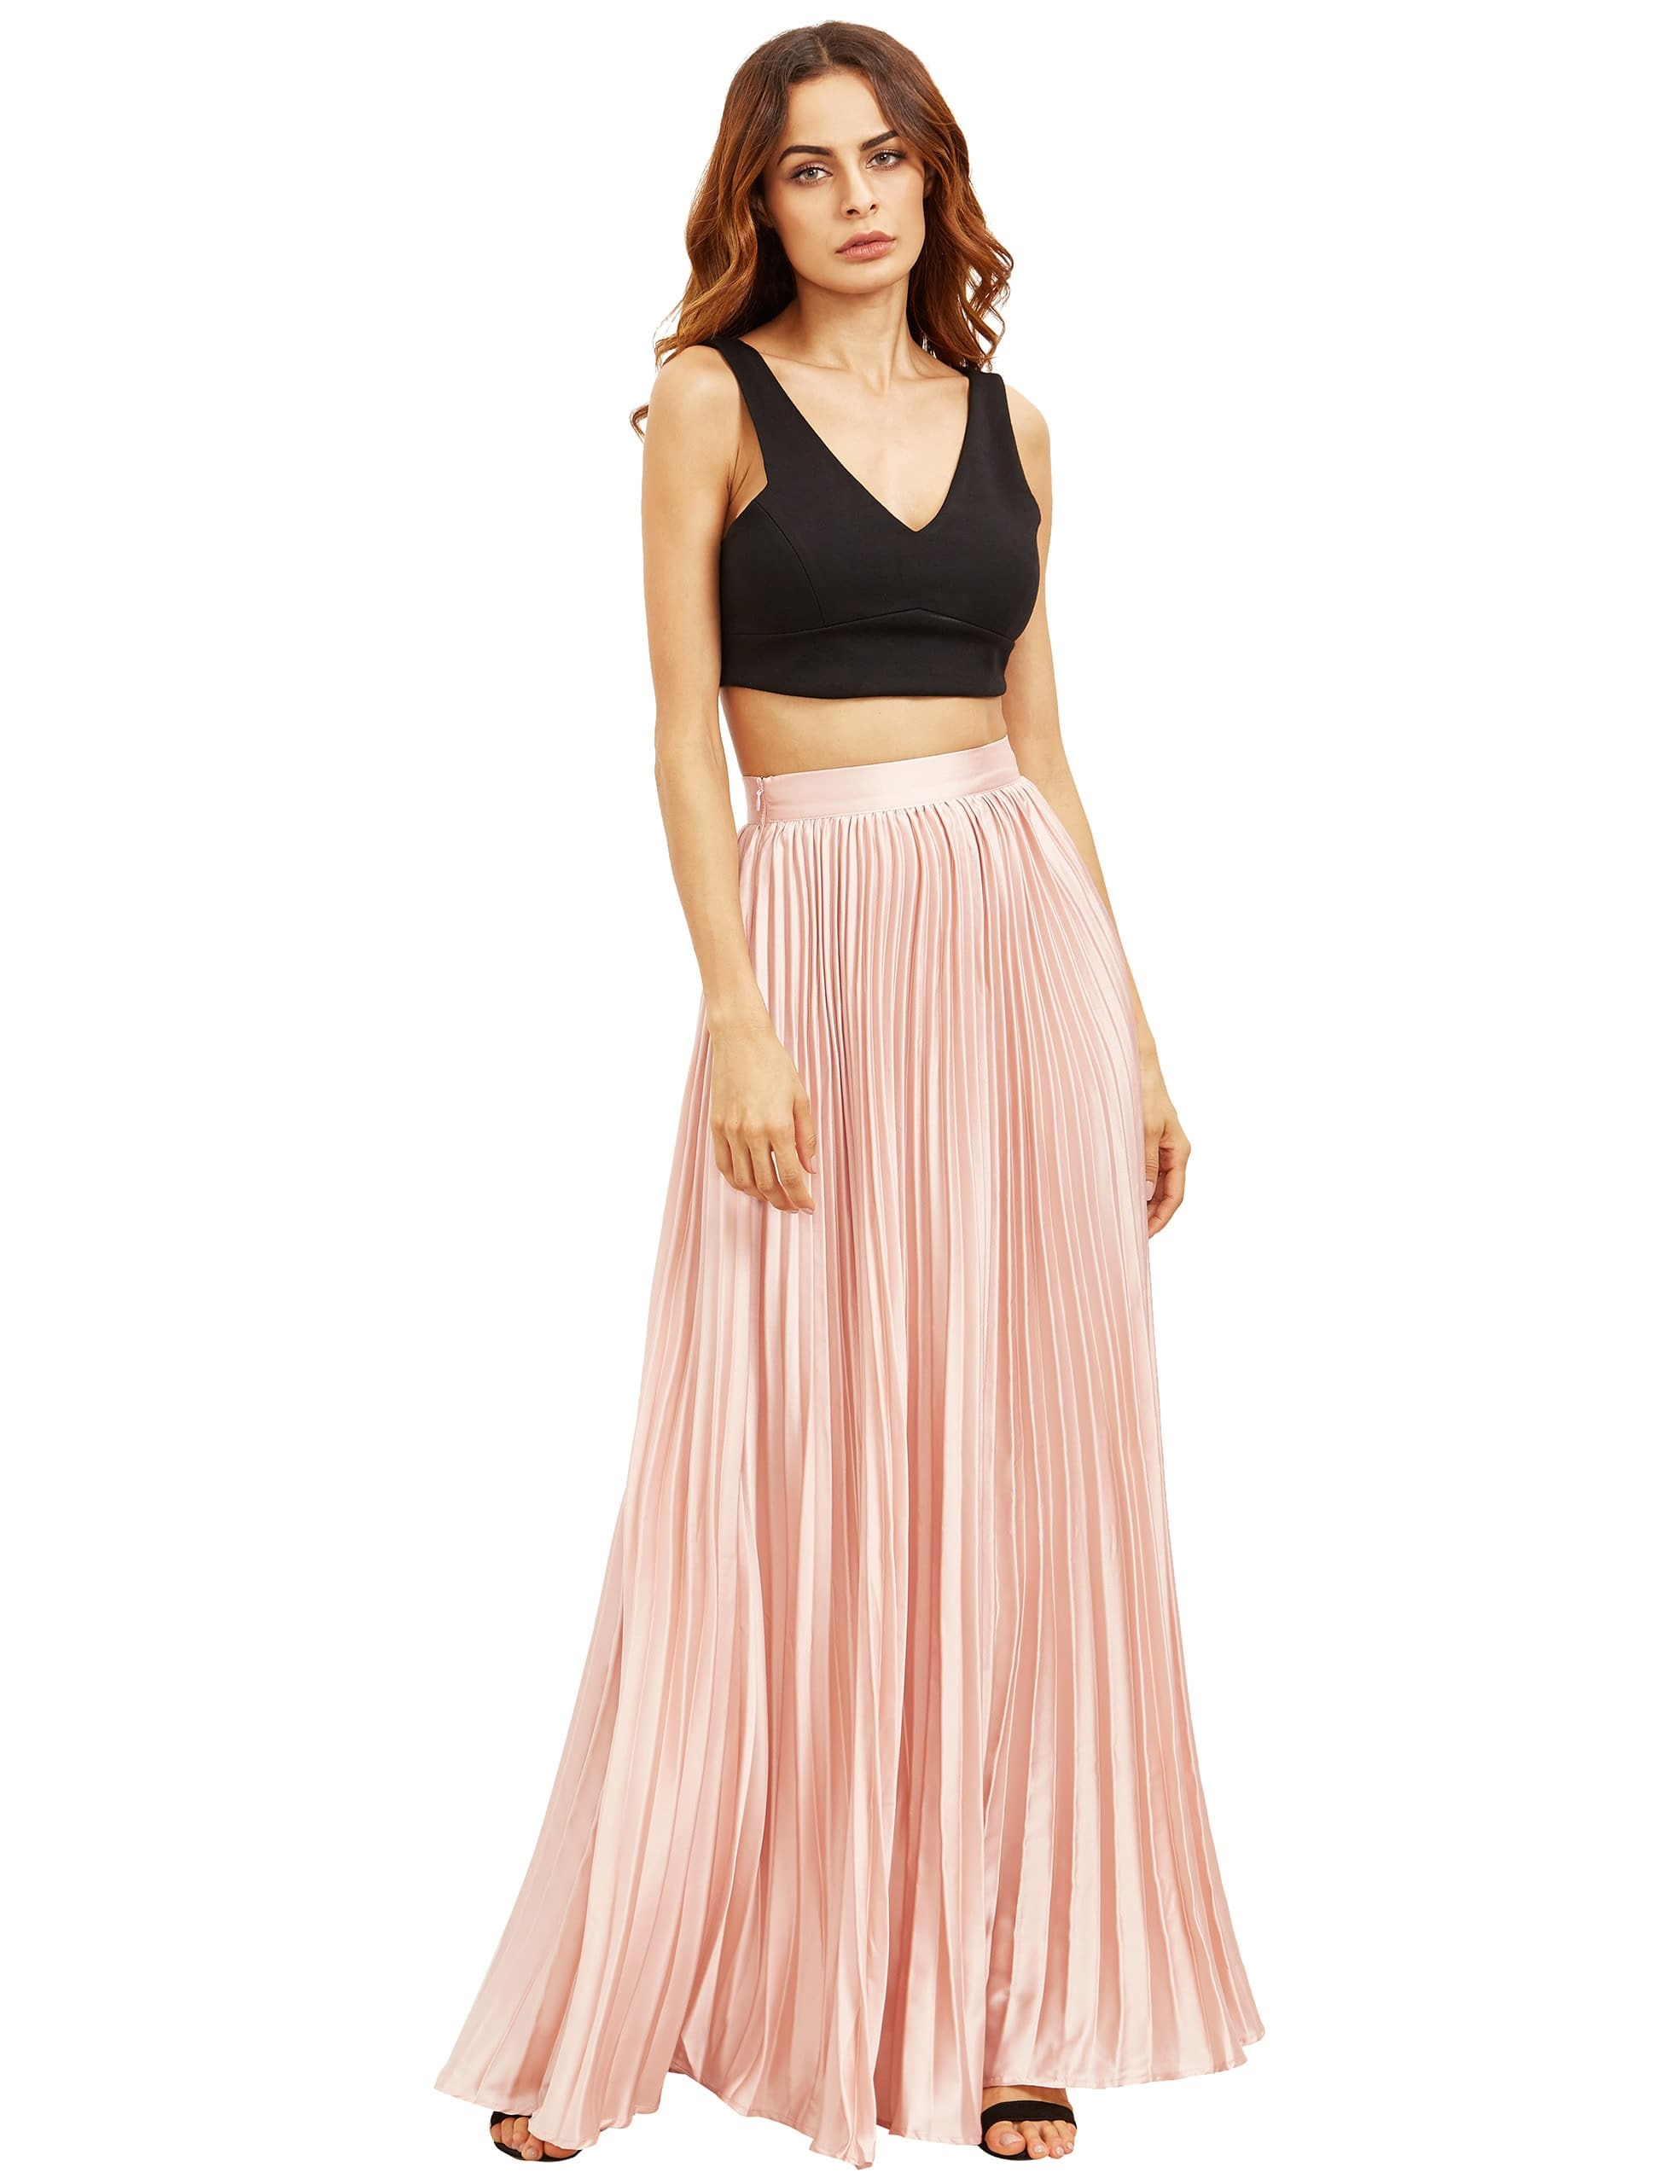 Skirt Sale - Save $5 off orders of $59 at ROMWEwith promocode SKIRTS5 - Valid 4/1 - 4/30